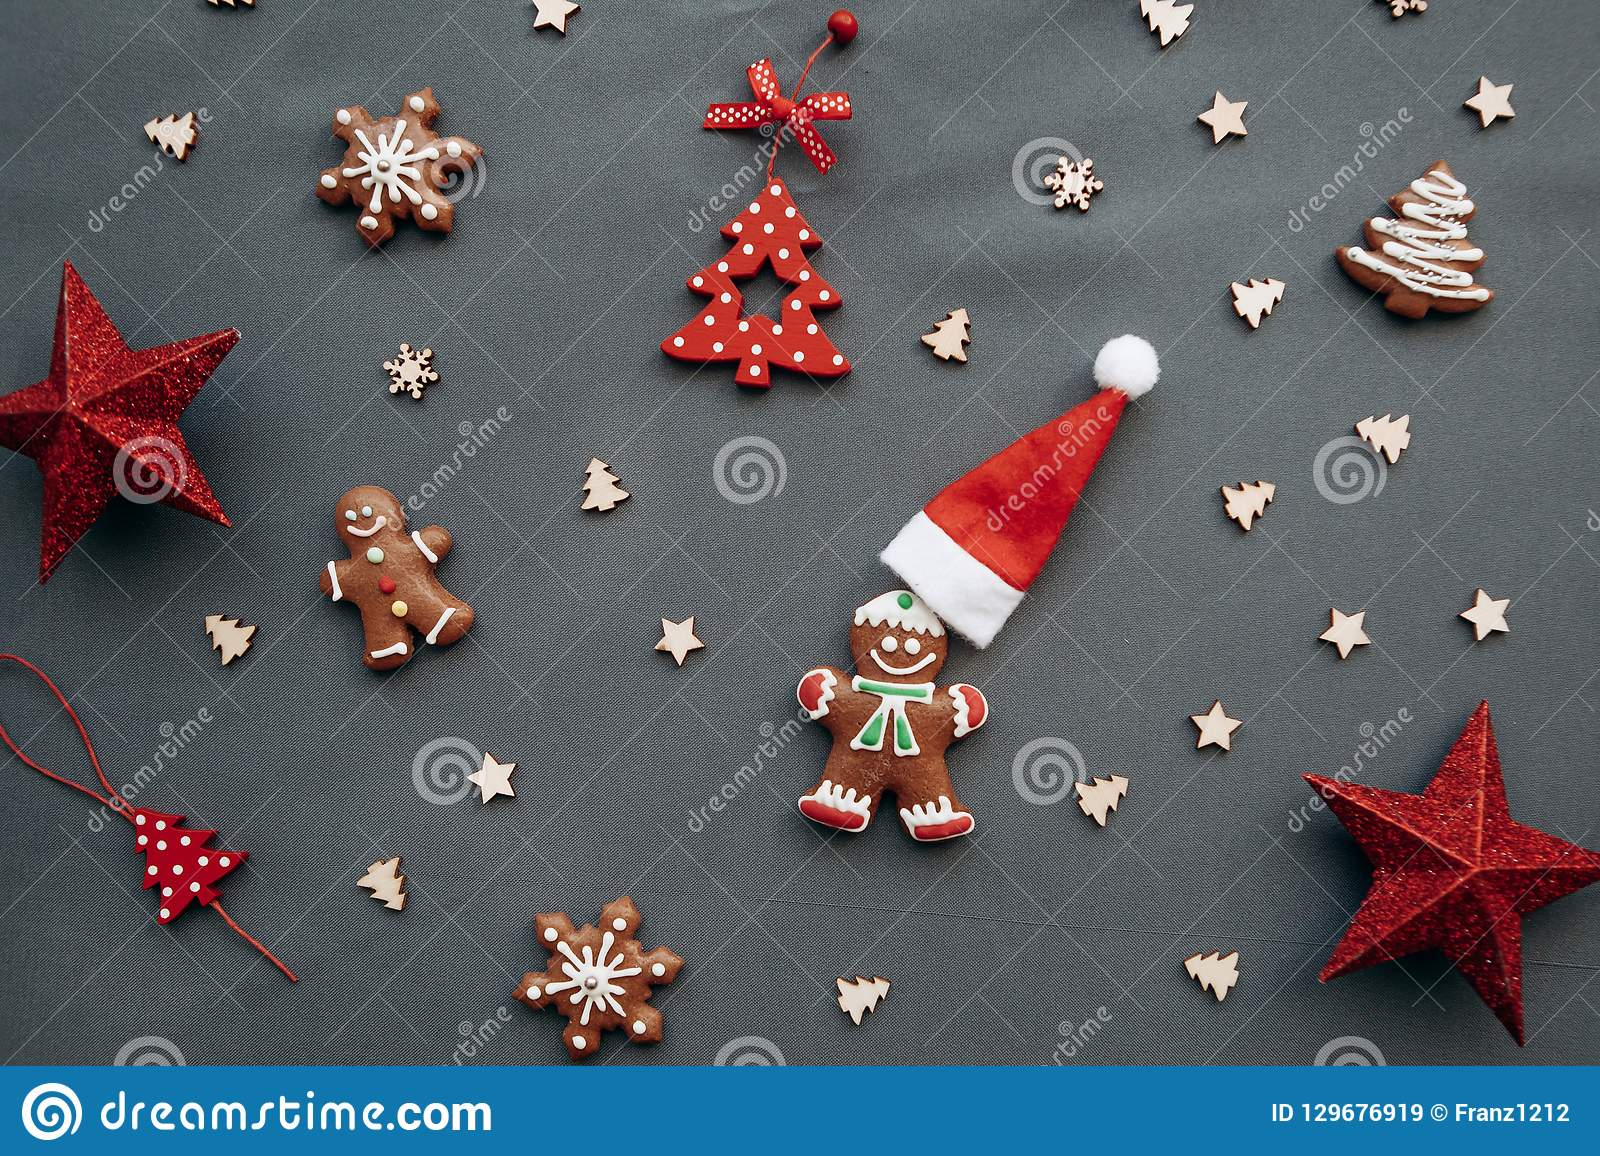 Christmas toys and gingerbread in the form of a traditional ginger man with a Santa Claus hat on a gray background.